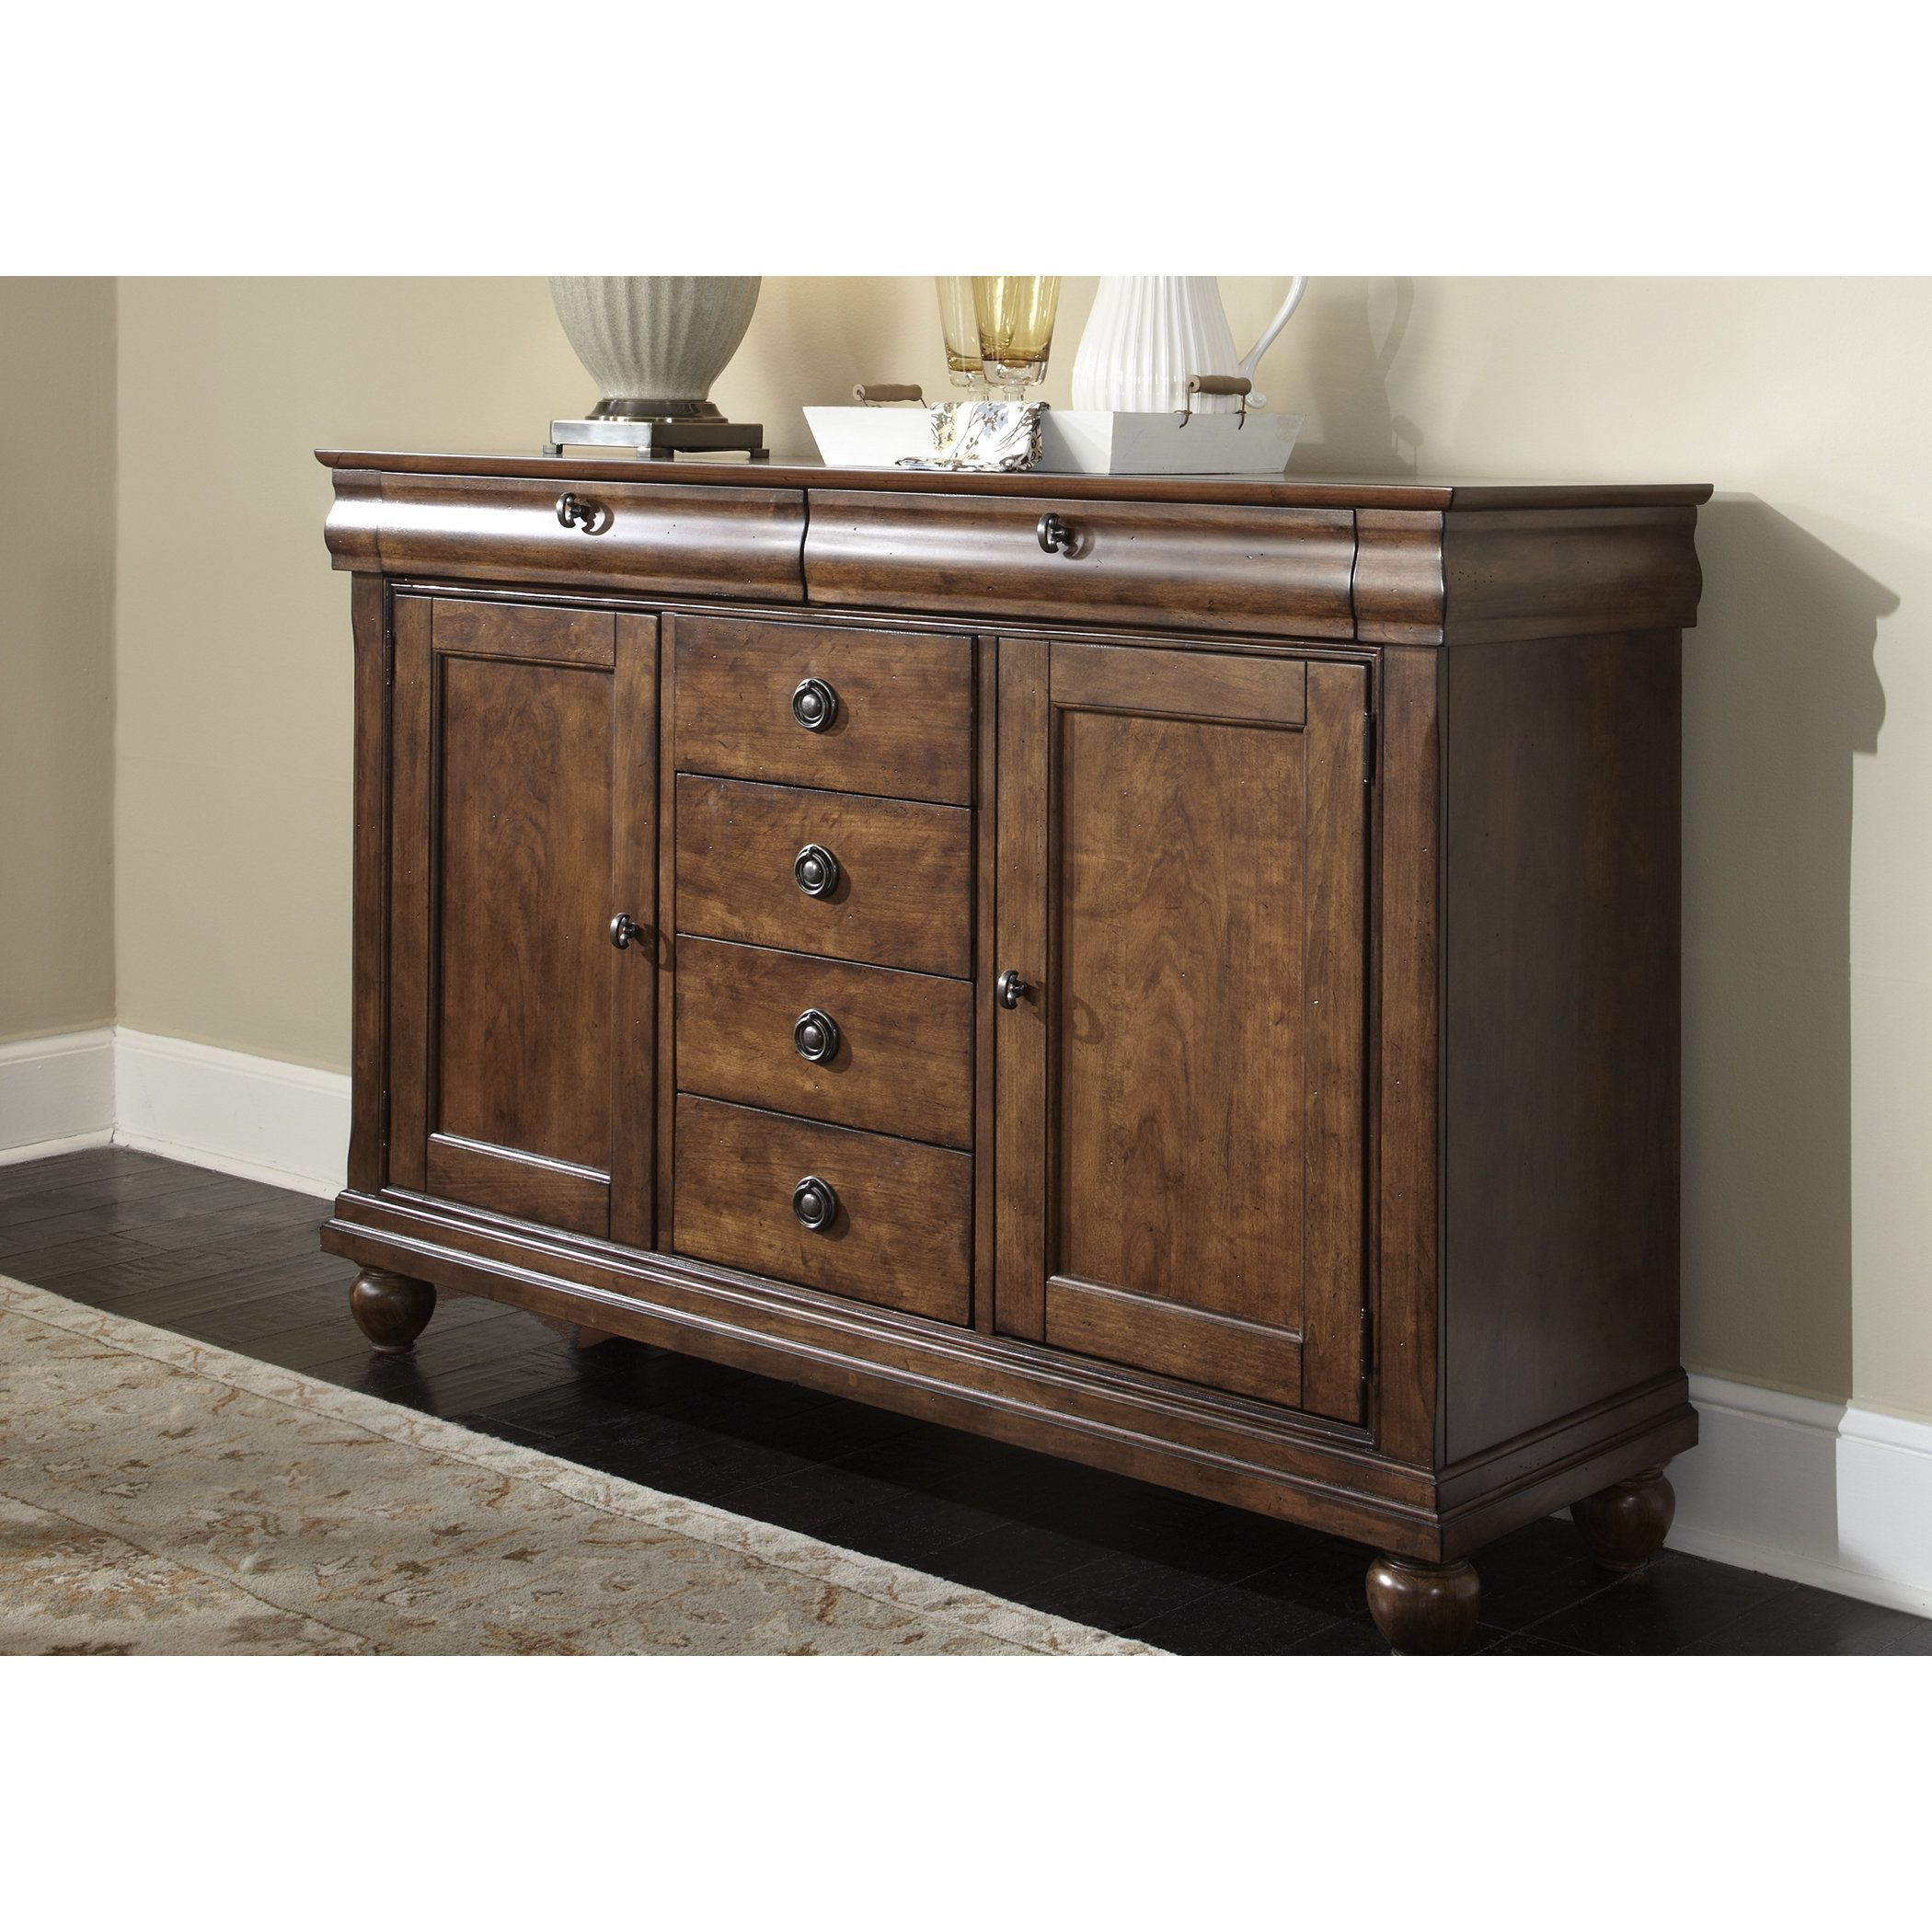 Liberty Rustic Tradition Cherry Server, Brown | Products With Regard To Chalus Sideboards (View 18 of 30)